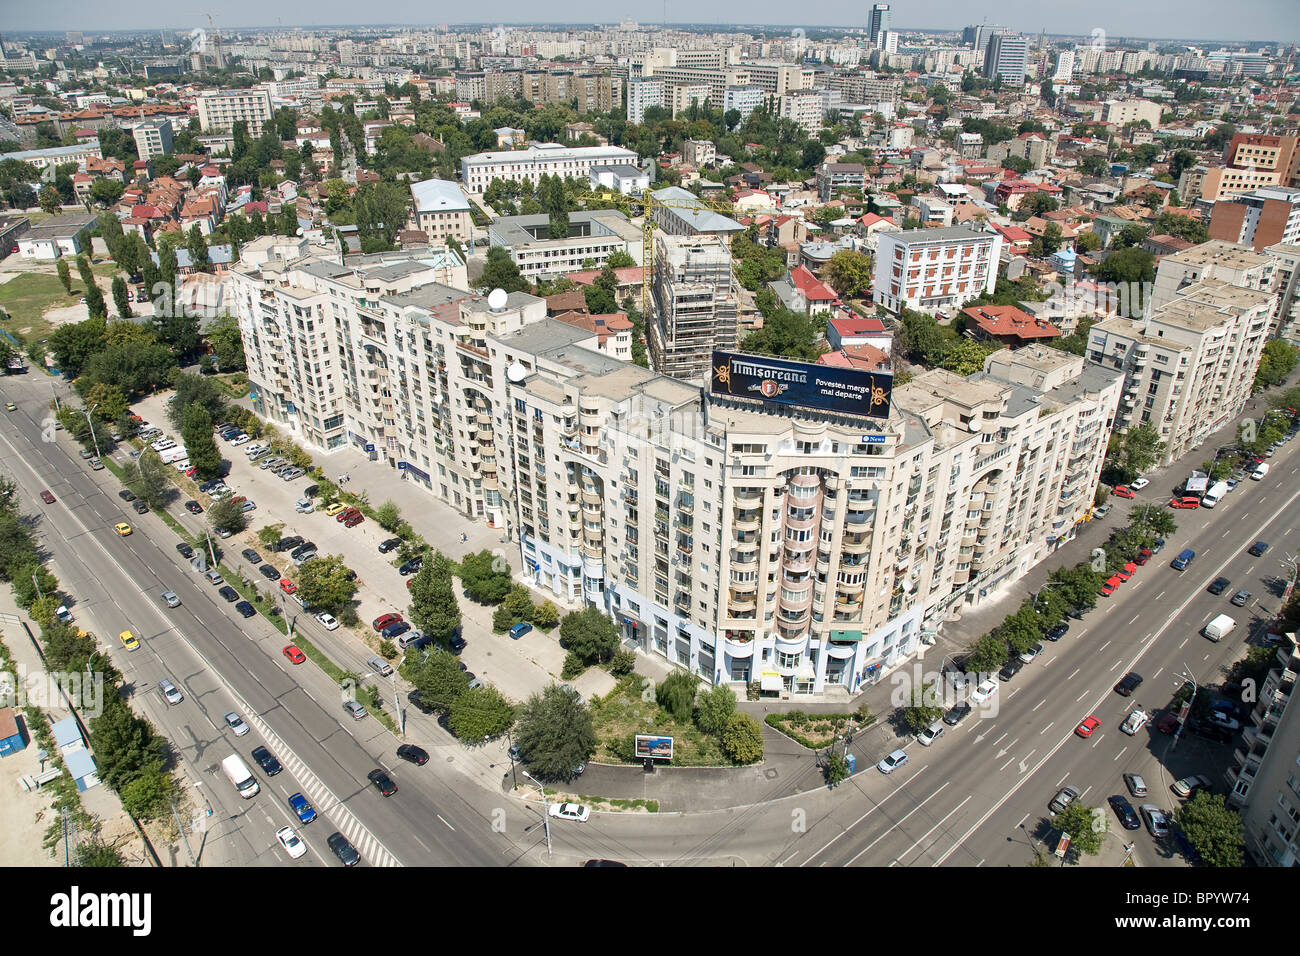 Aerial photograph of the city of Bucharest in Romania Stock Photo